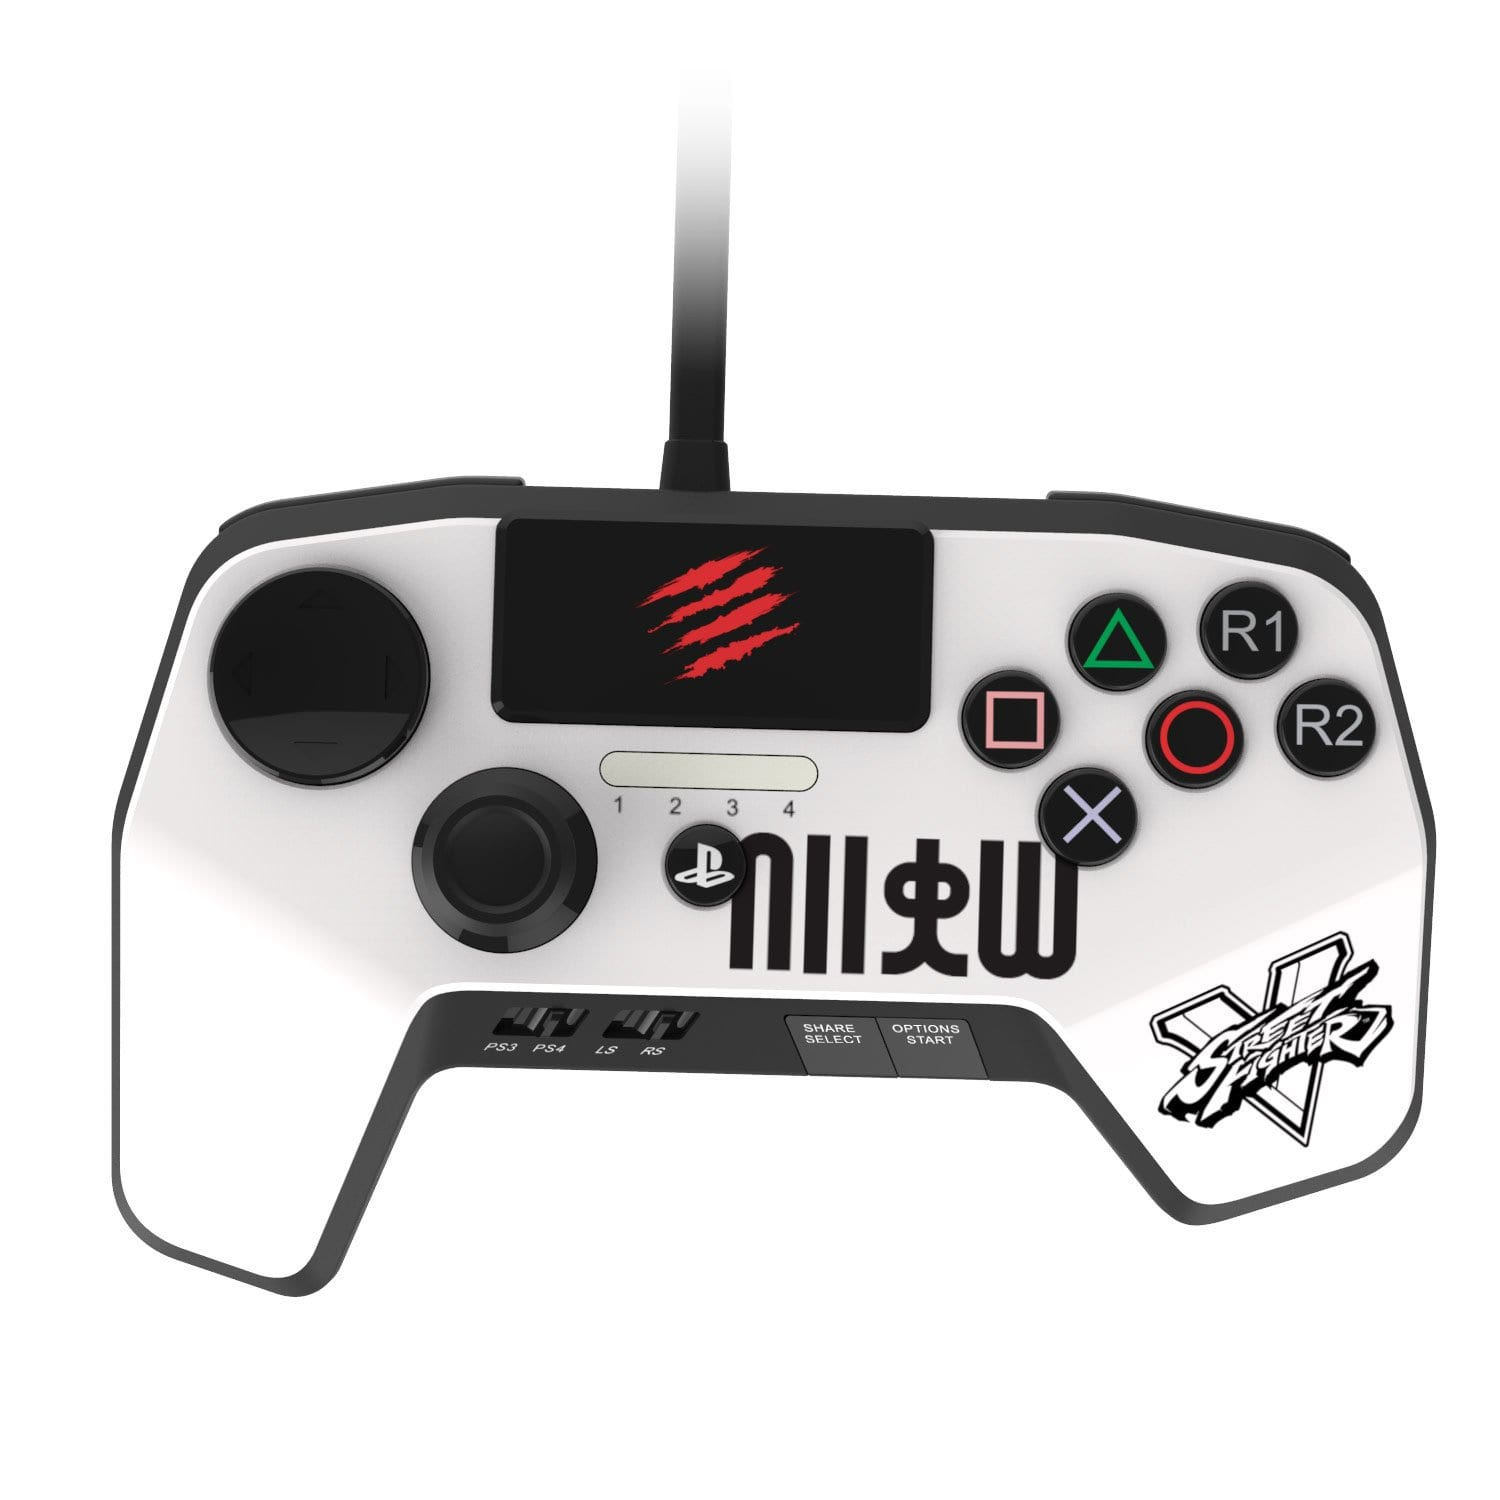 SparkFox Madcatz Controller White - PS3/PS4